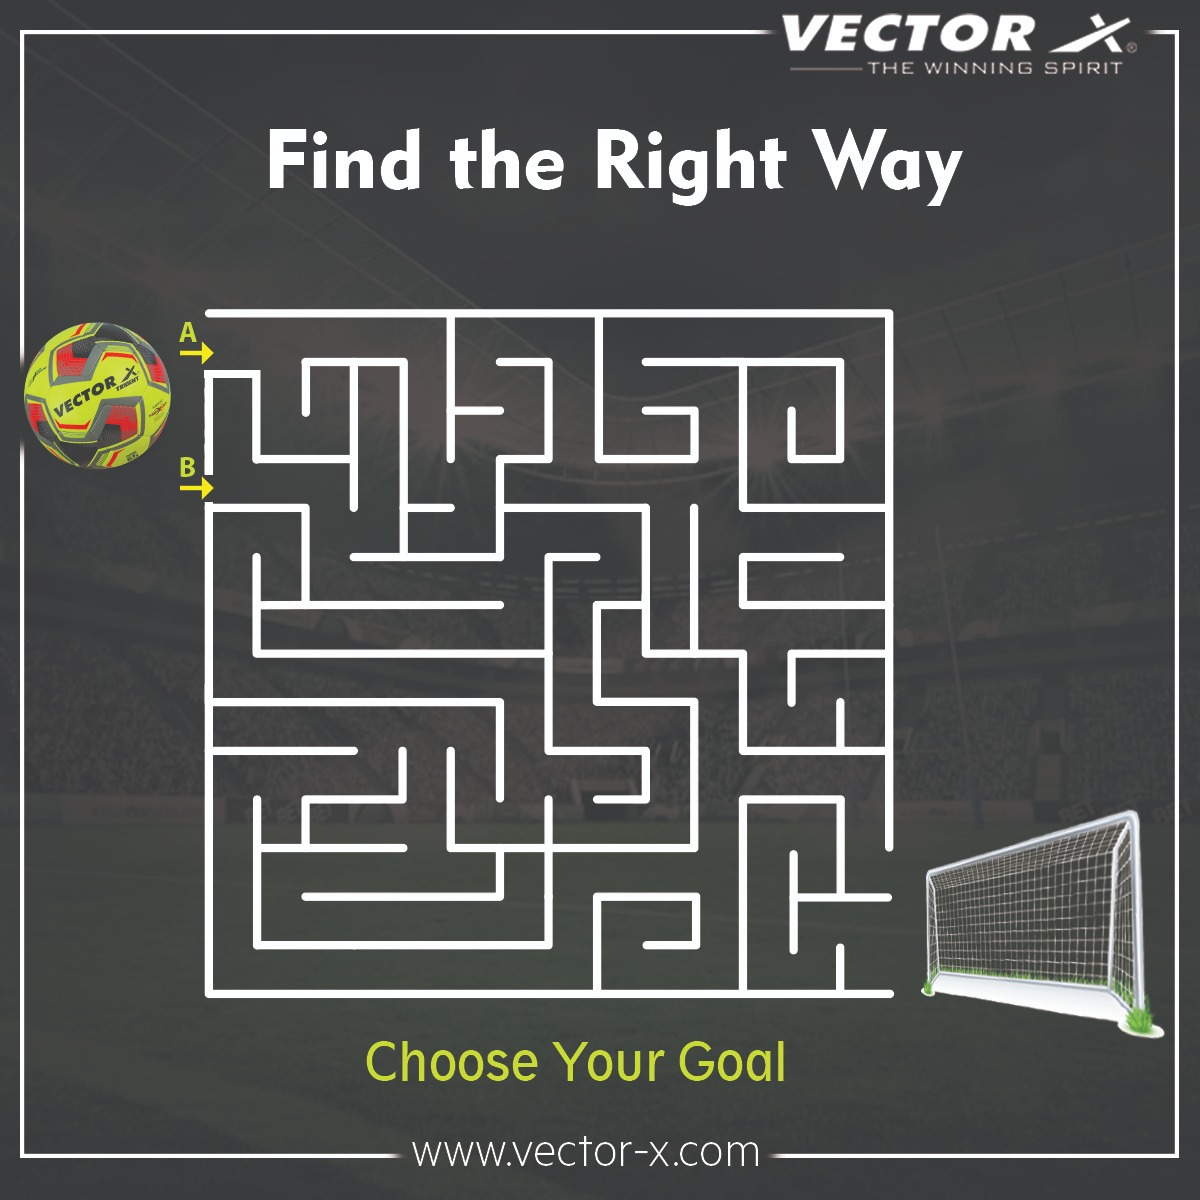 Puzzle Time!! Help the football to reach the goal. Leave your answers in the comments below. Also, Tag your Friends ⚽🤩  #SoccerPuzzle #game #gametime #VectorX #TheWinningSpirit #Bhaichungbhutia #goal #pushthegoal #XFactor #Football #footballtime #letsfootball #soccer #sports https://t.co/xGTFnq3Jqw